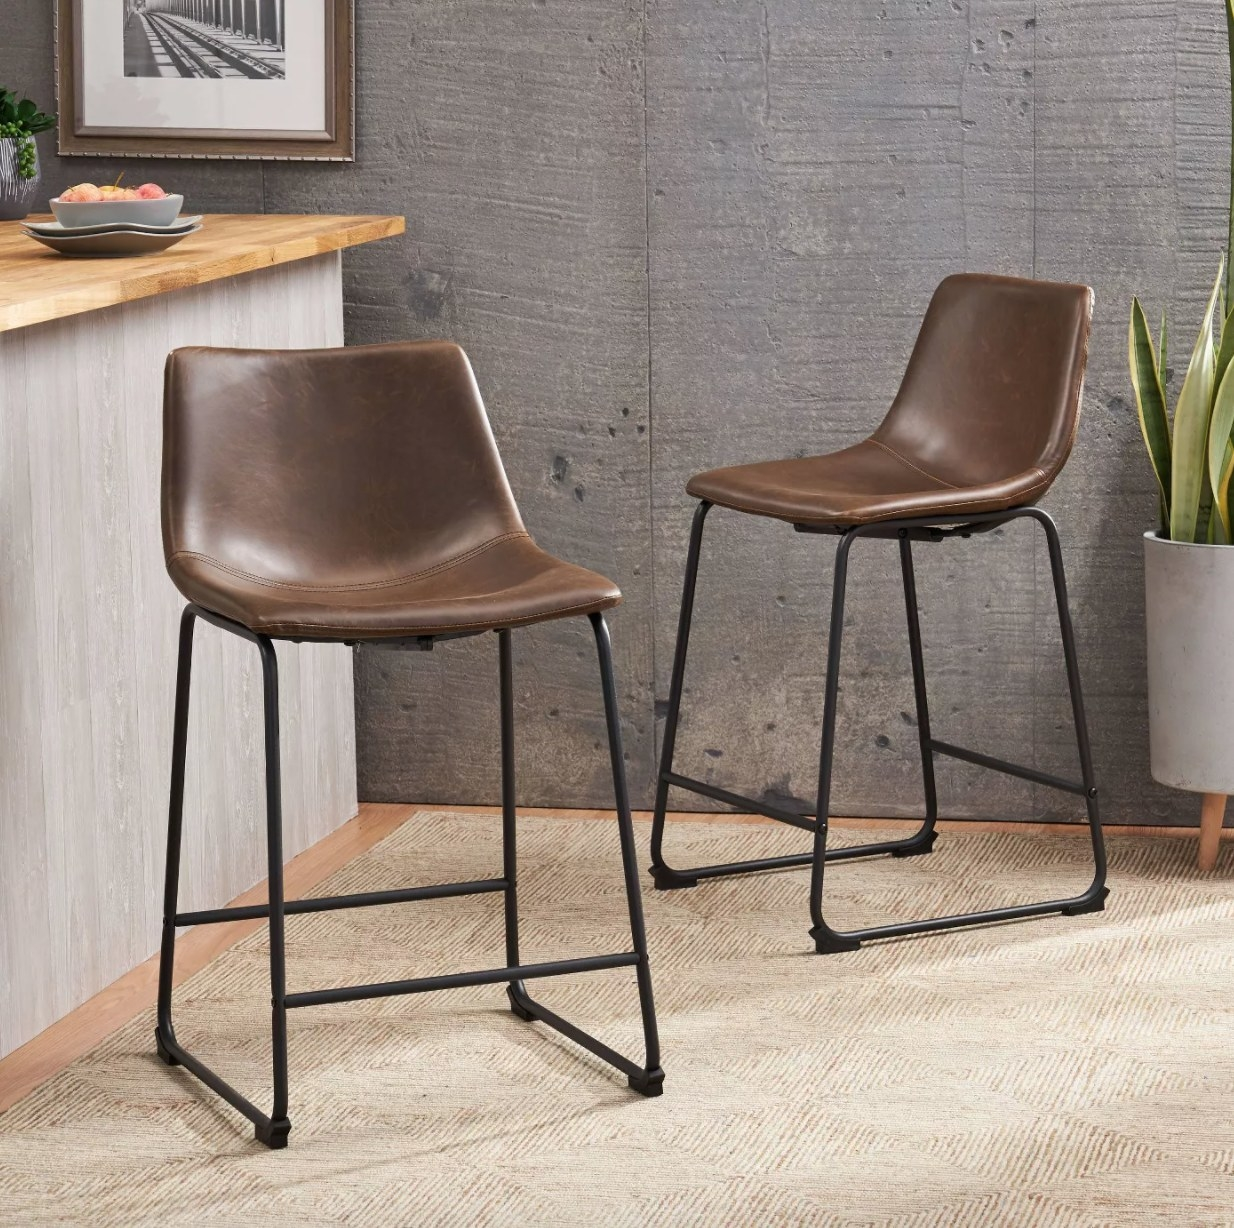 Two brown faux leather bar stools with metal legs